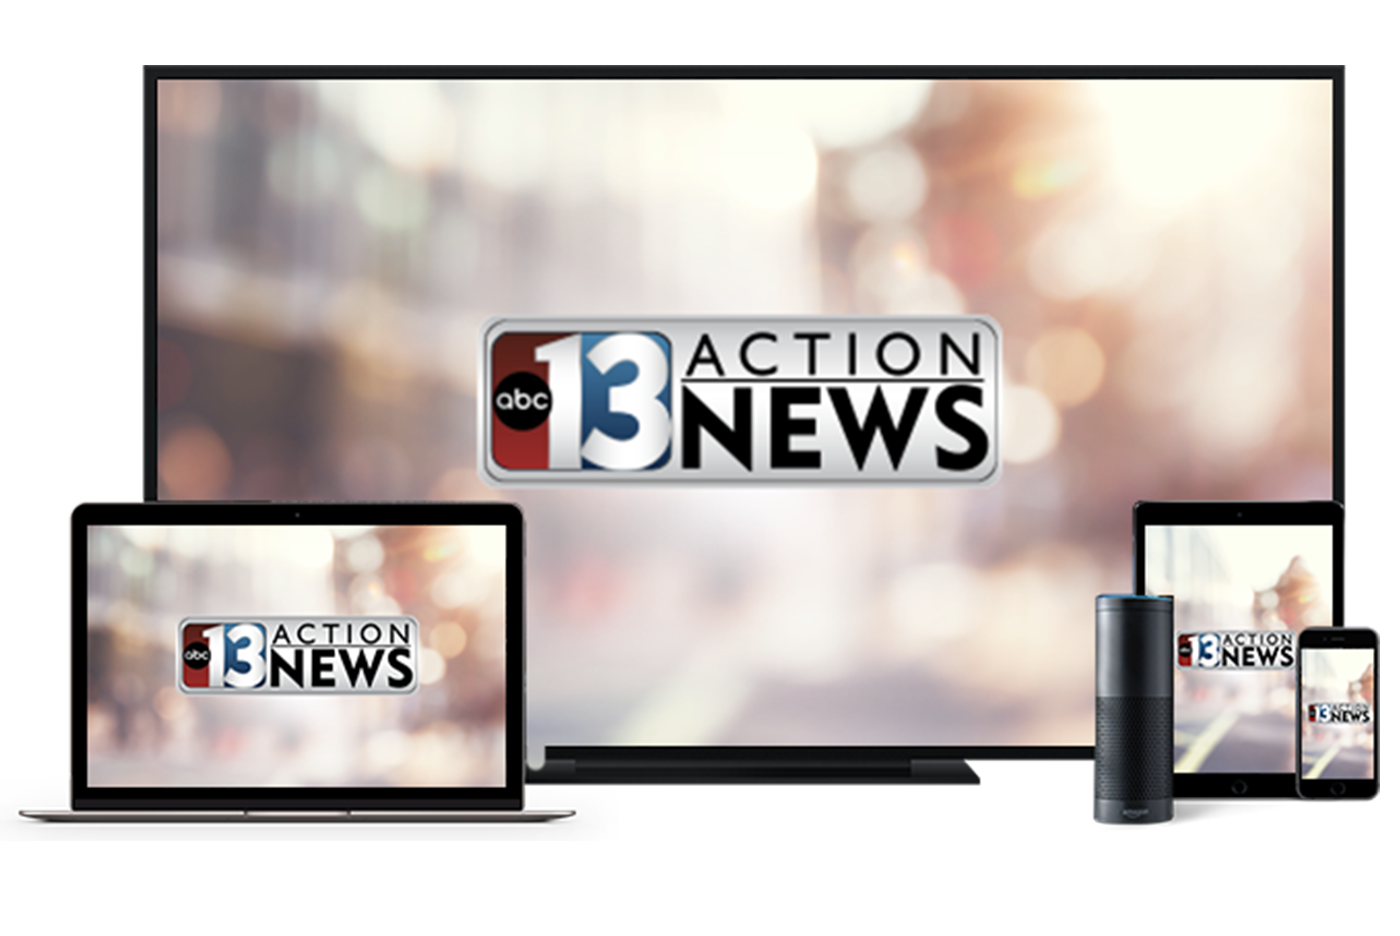 News Station Devices